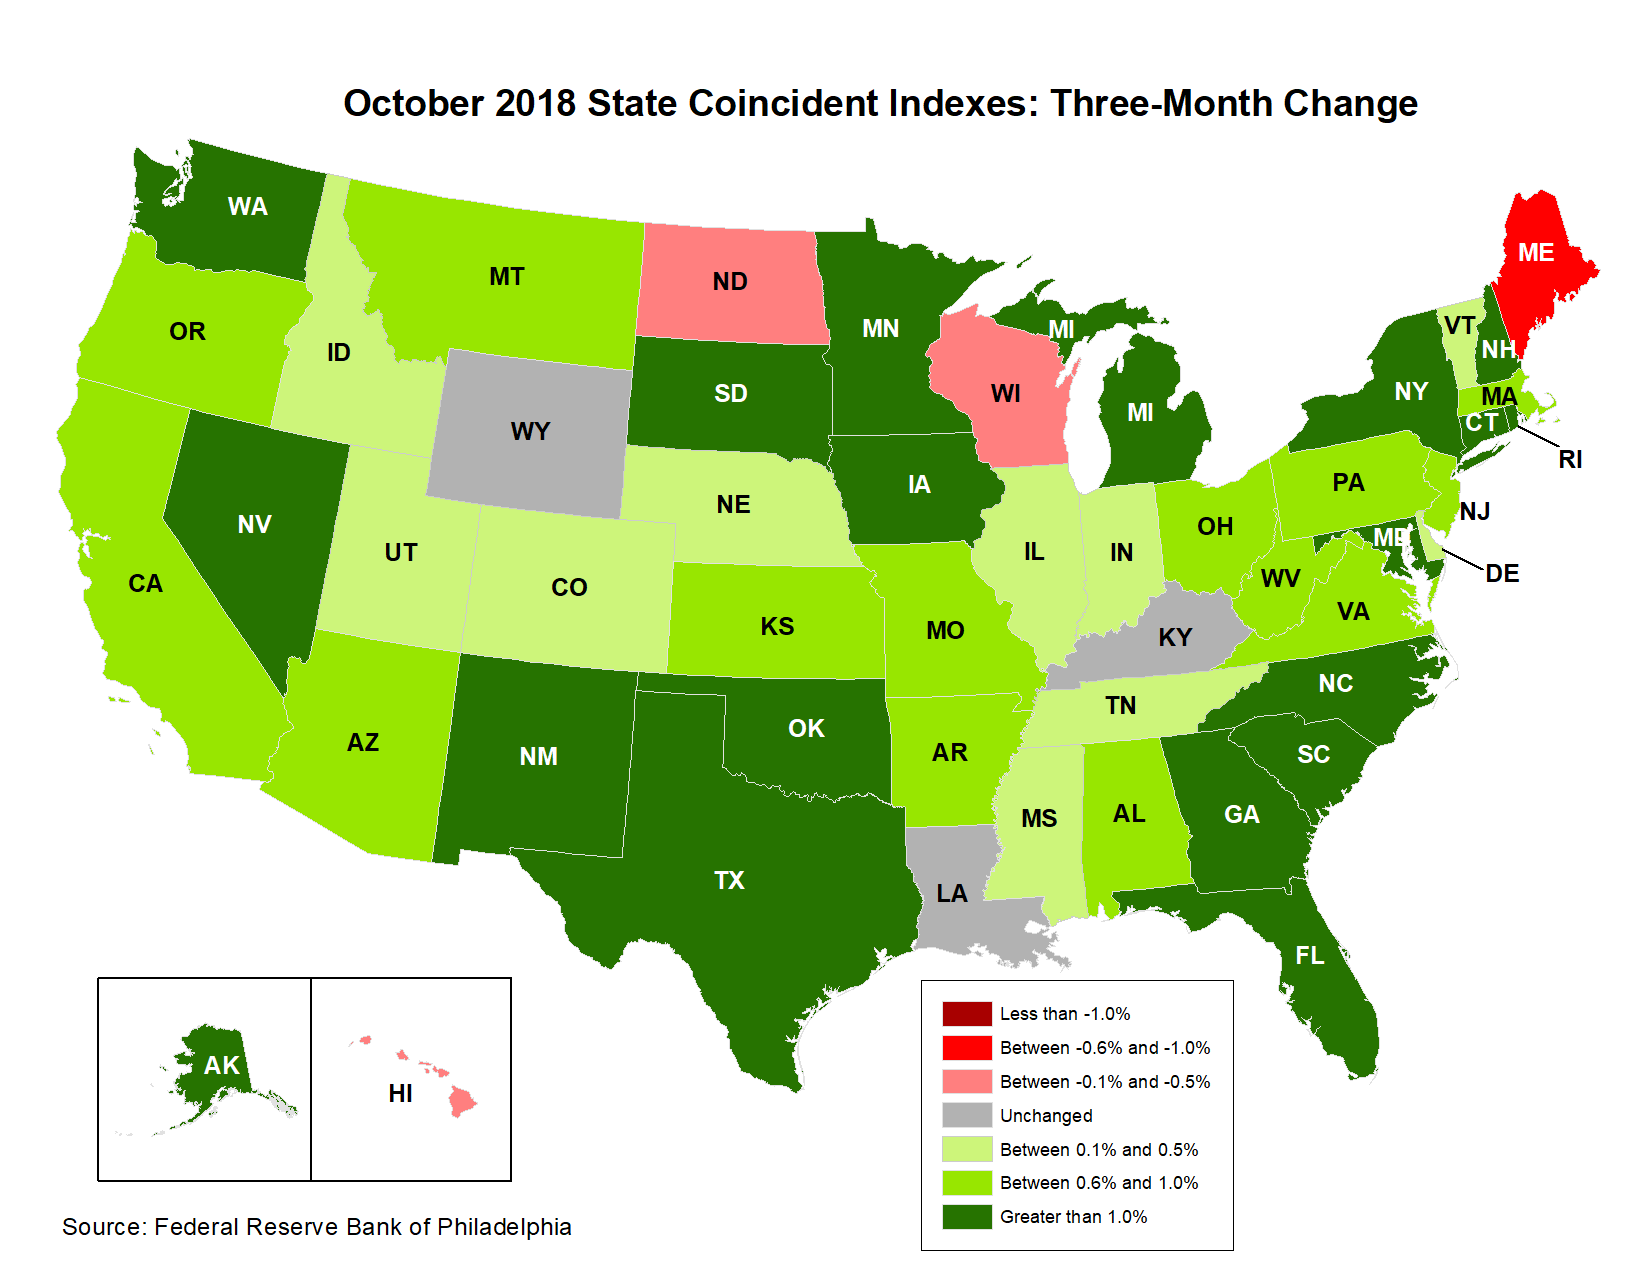 Map of the U.S. showing the State Coincident Indexes Three-Month Change in October 2018